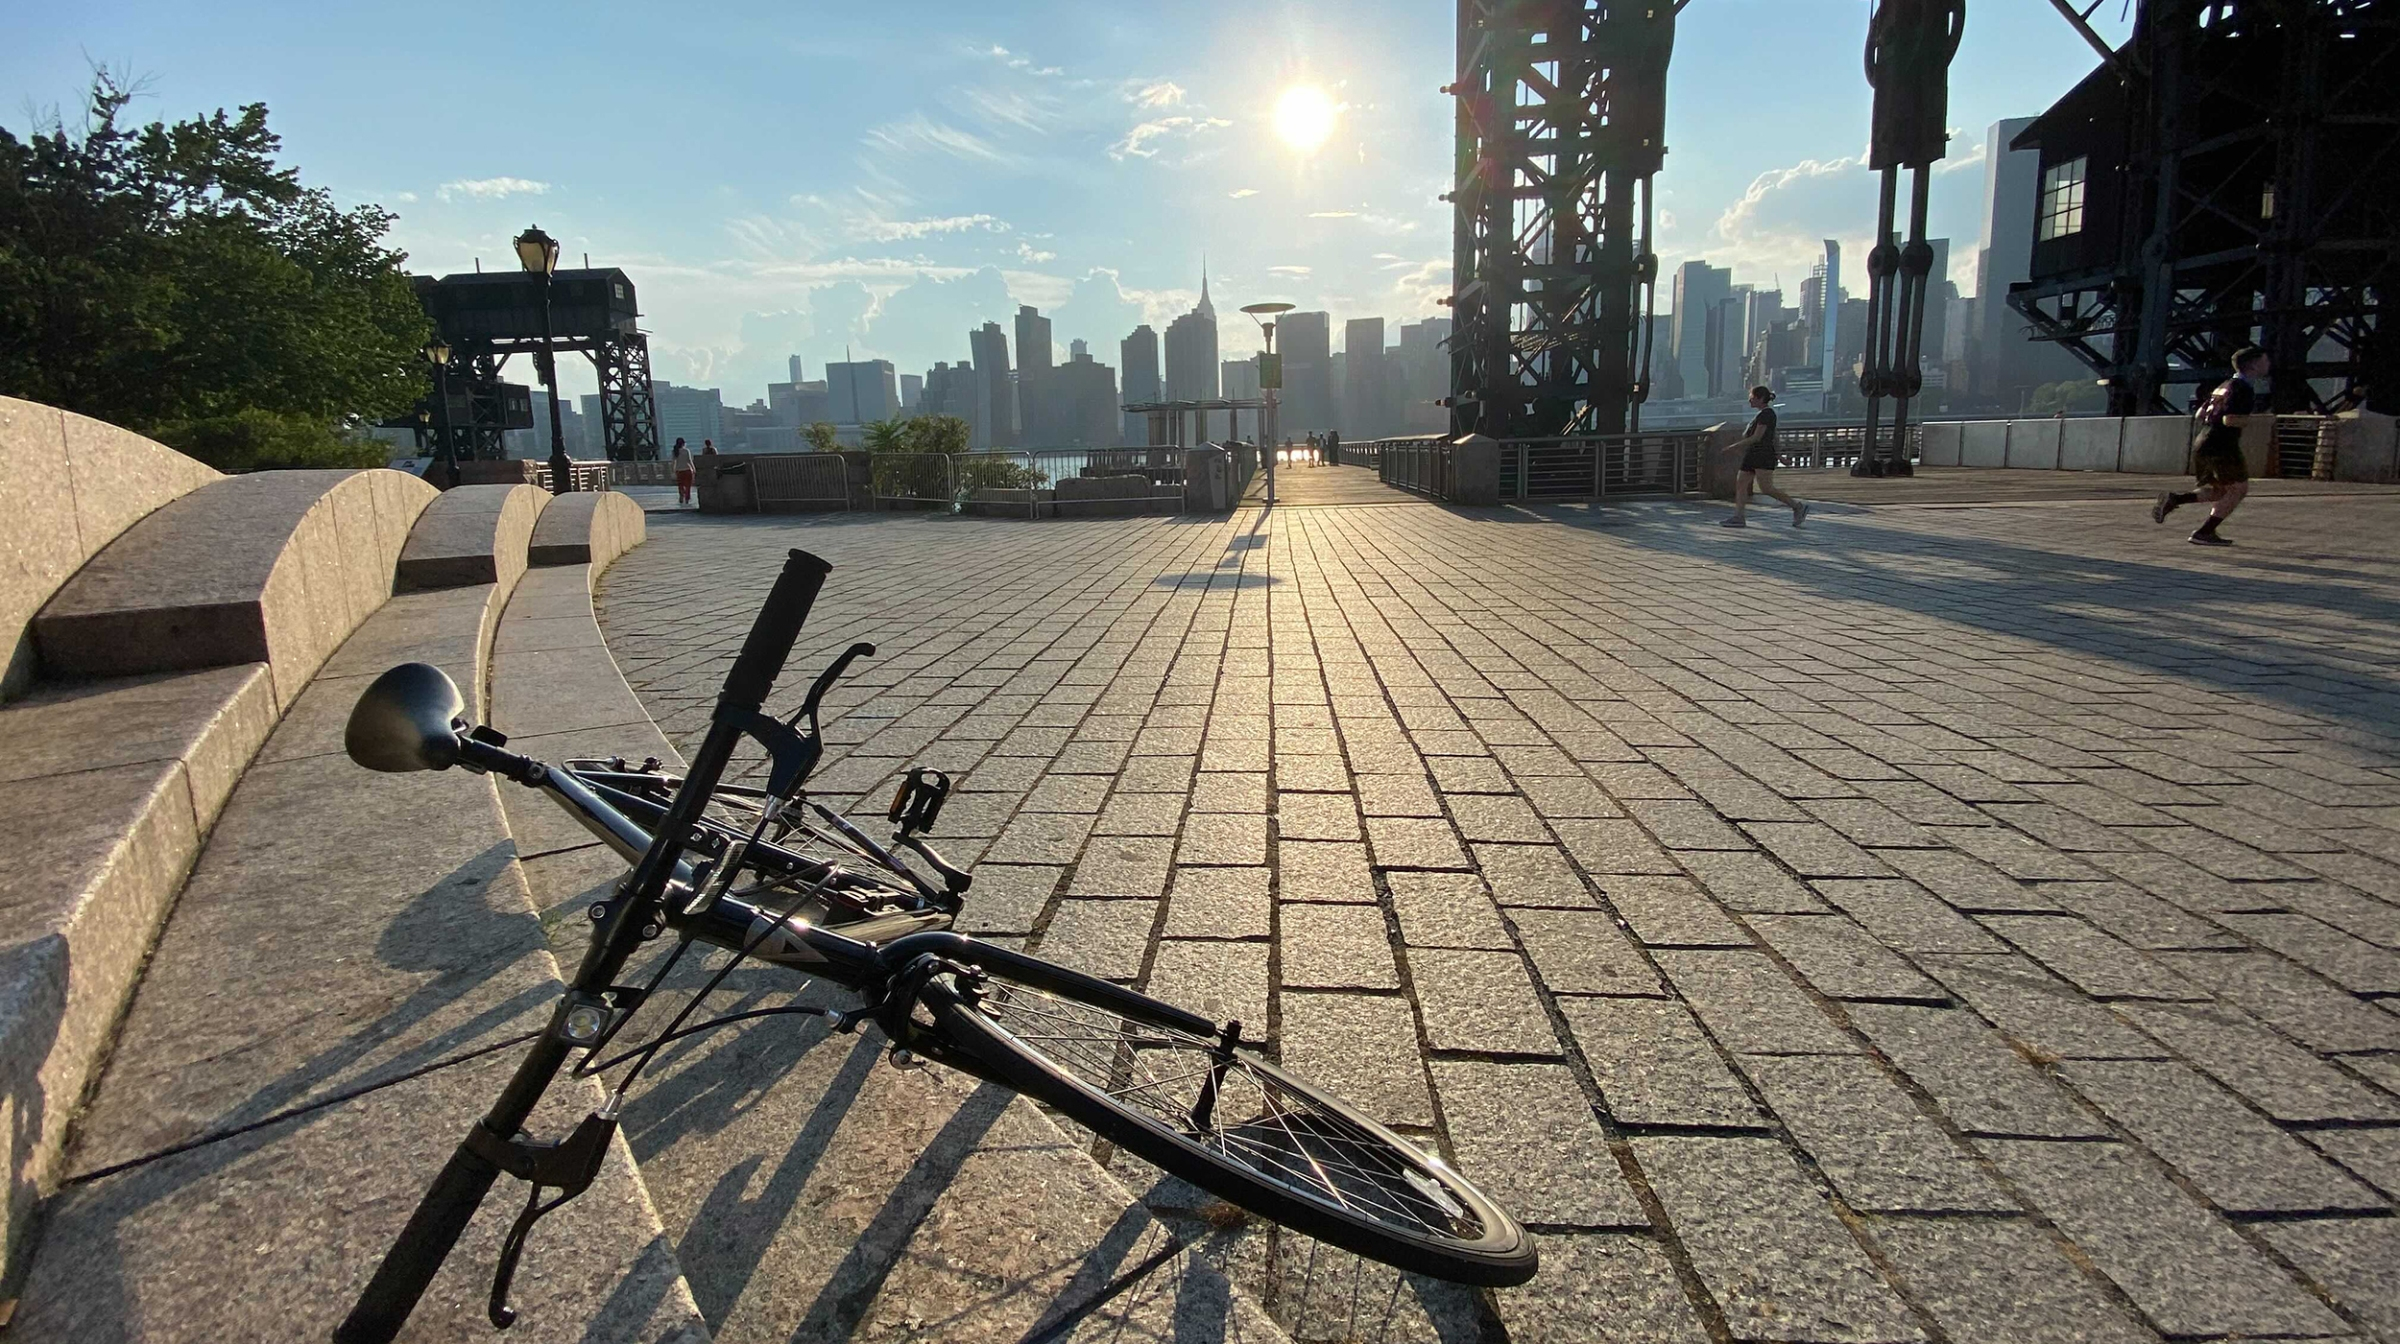 A bike rests by the waterfront in Queens, New York